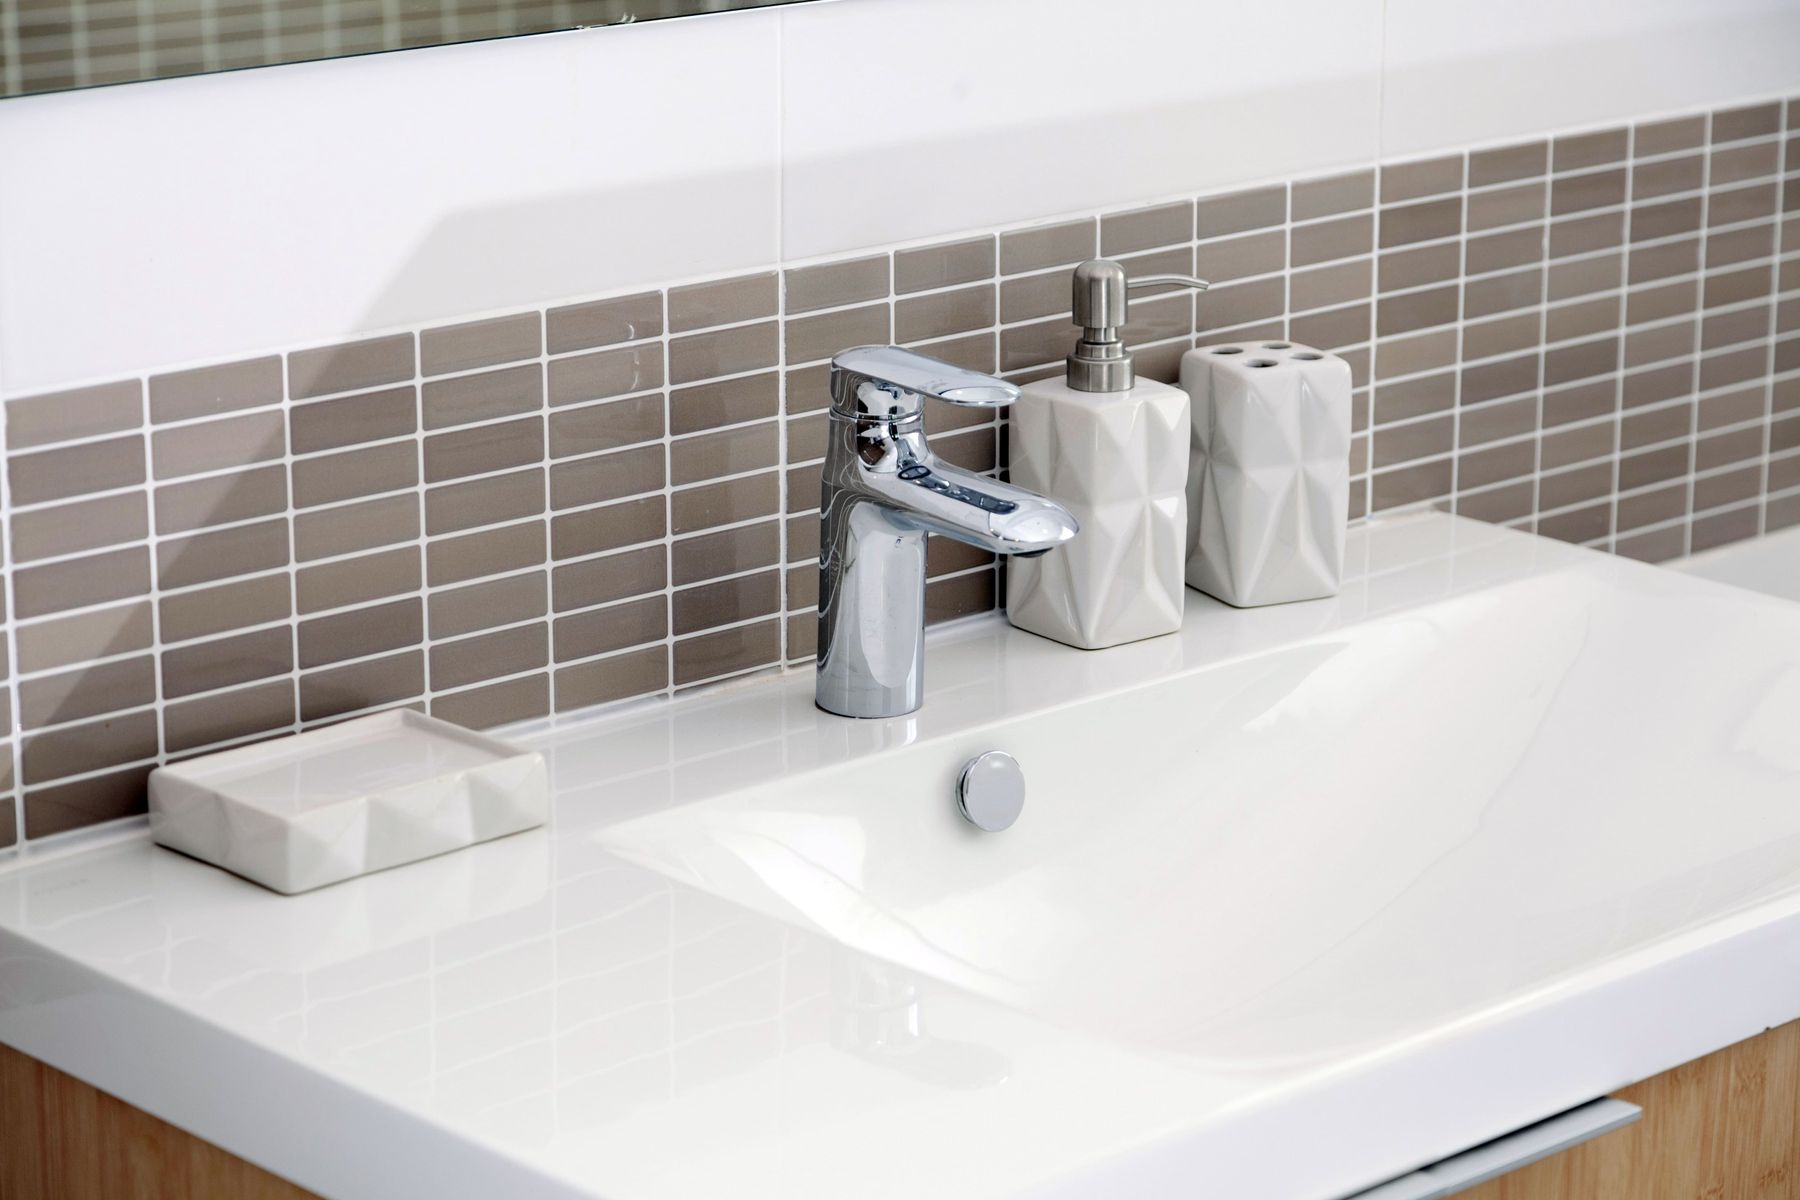 white bathroom sink with mixer tap